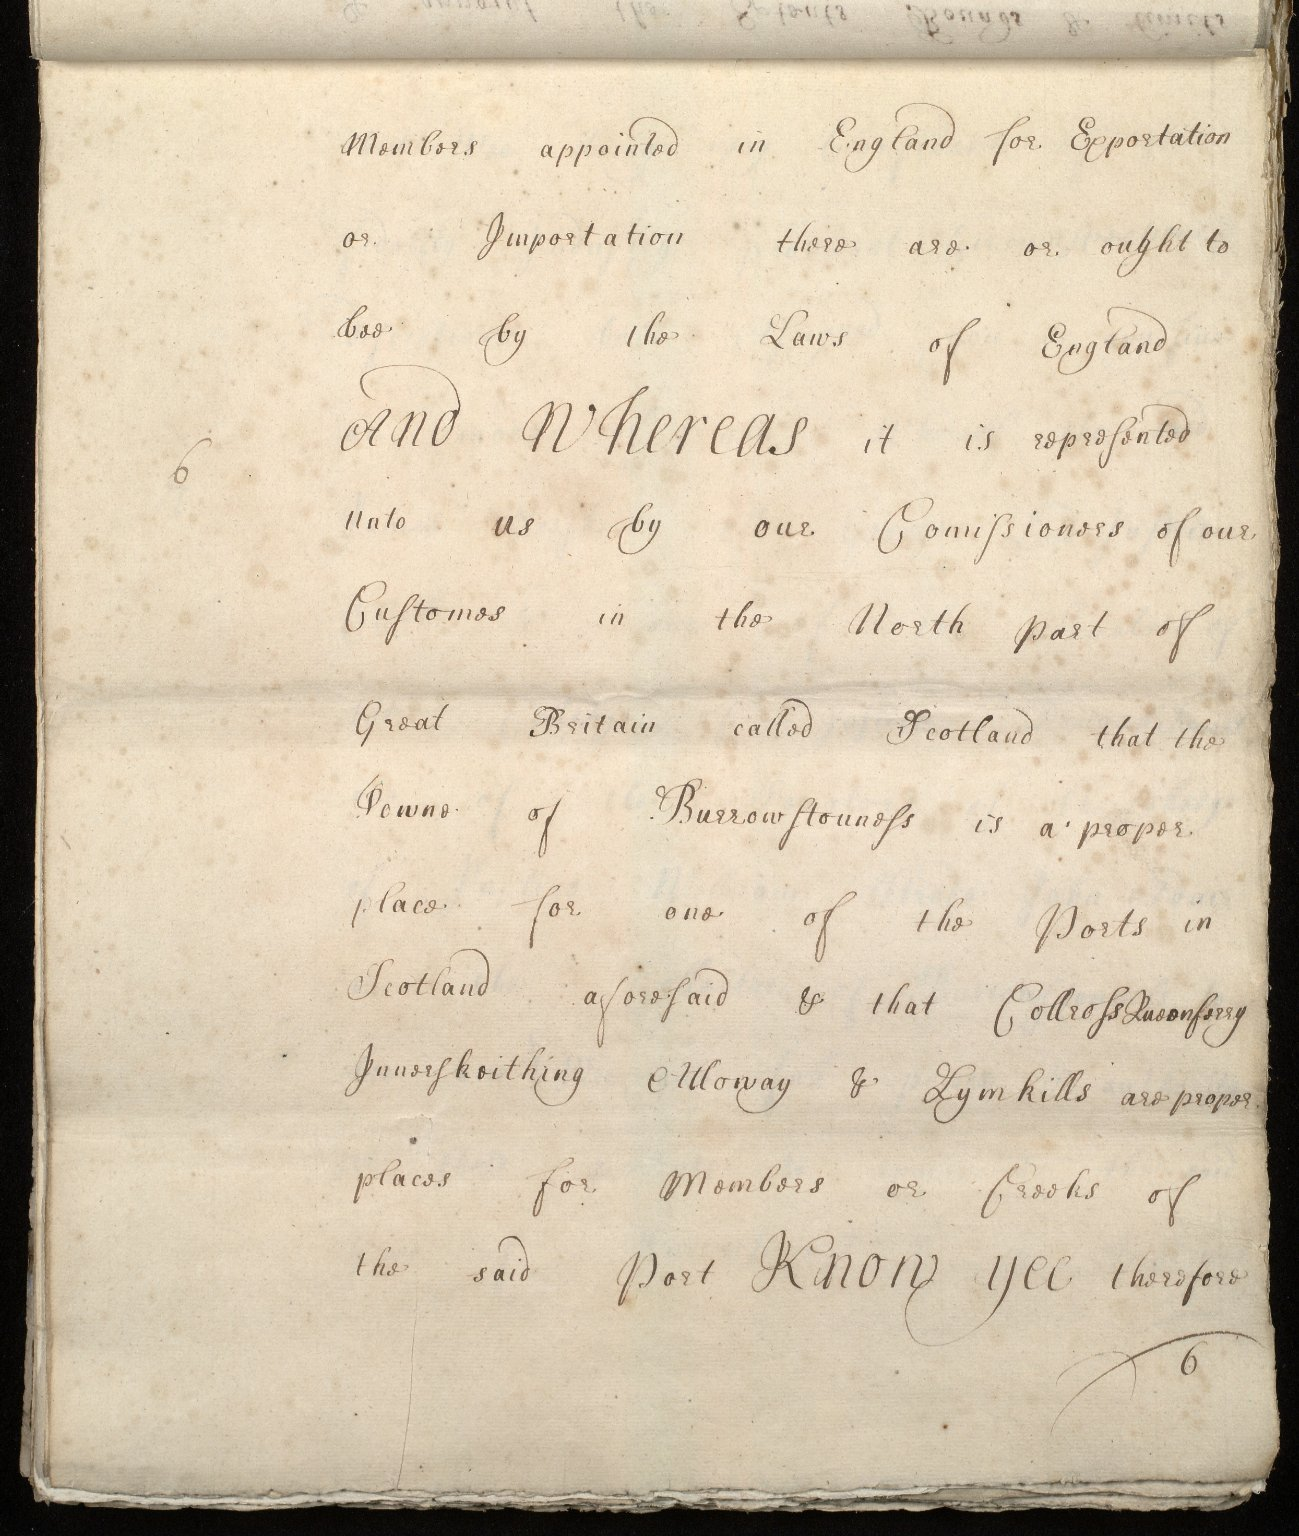 [Commission by Queen Anne to John Adair and others to appoint the town of Borrowstounness (Bo'ness) to be a port and to fix the bounds thereof] [06 of 39]